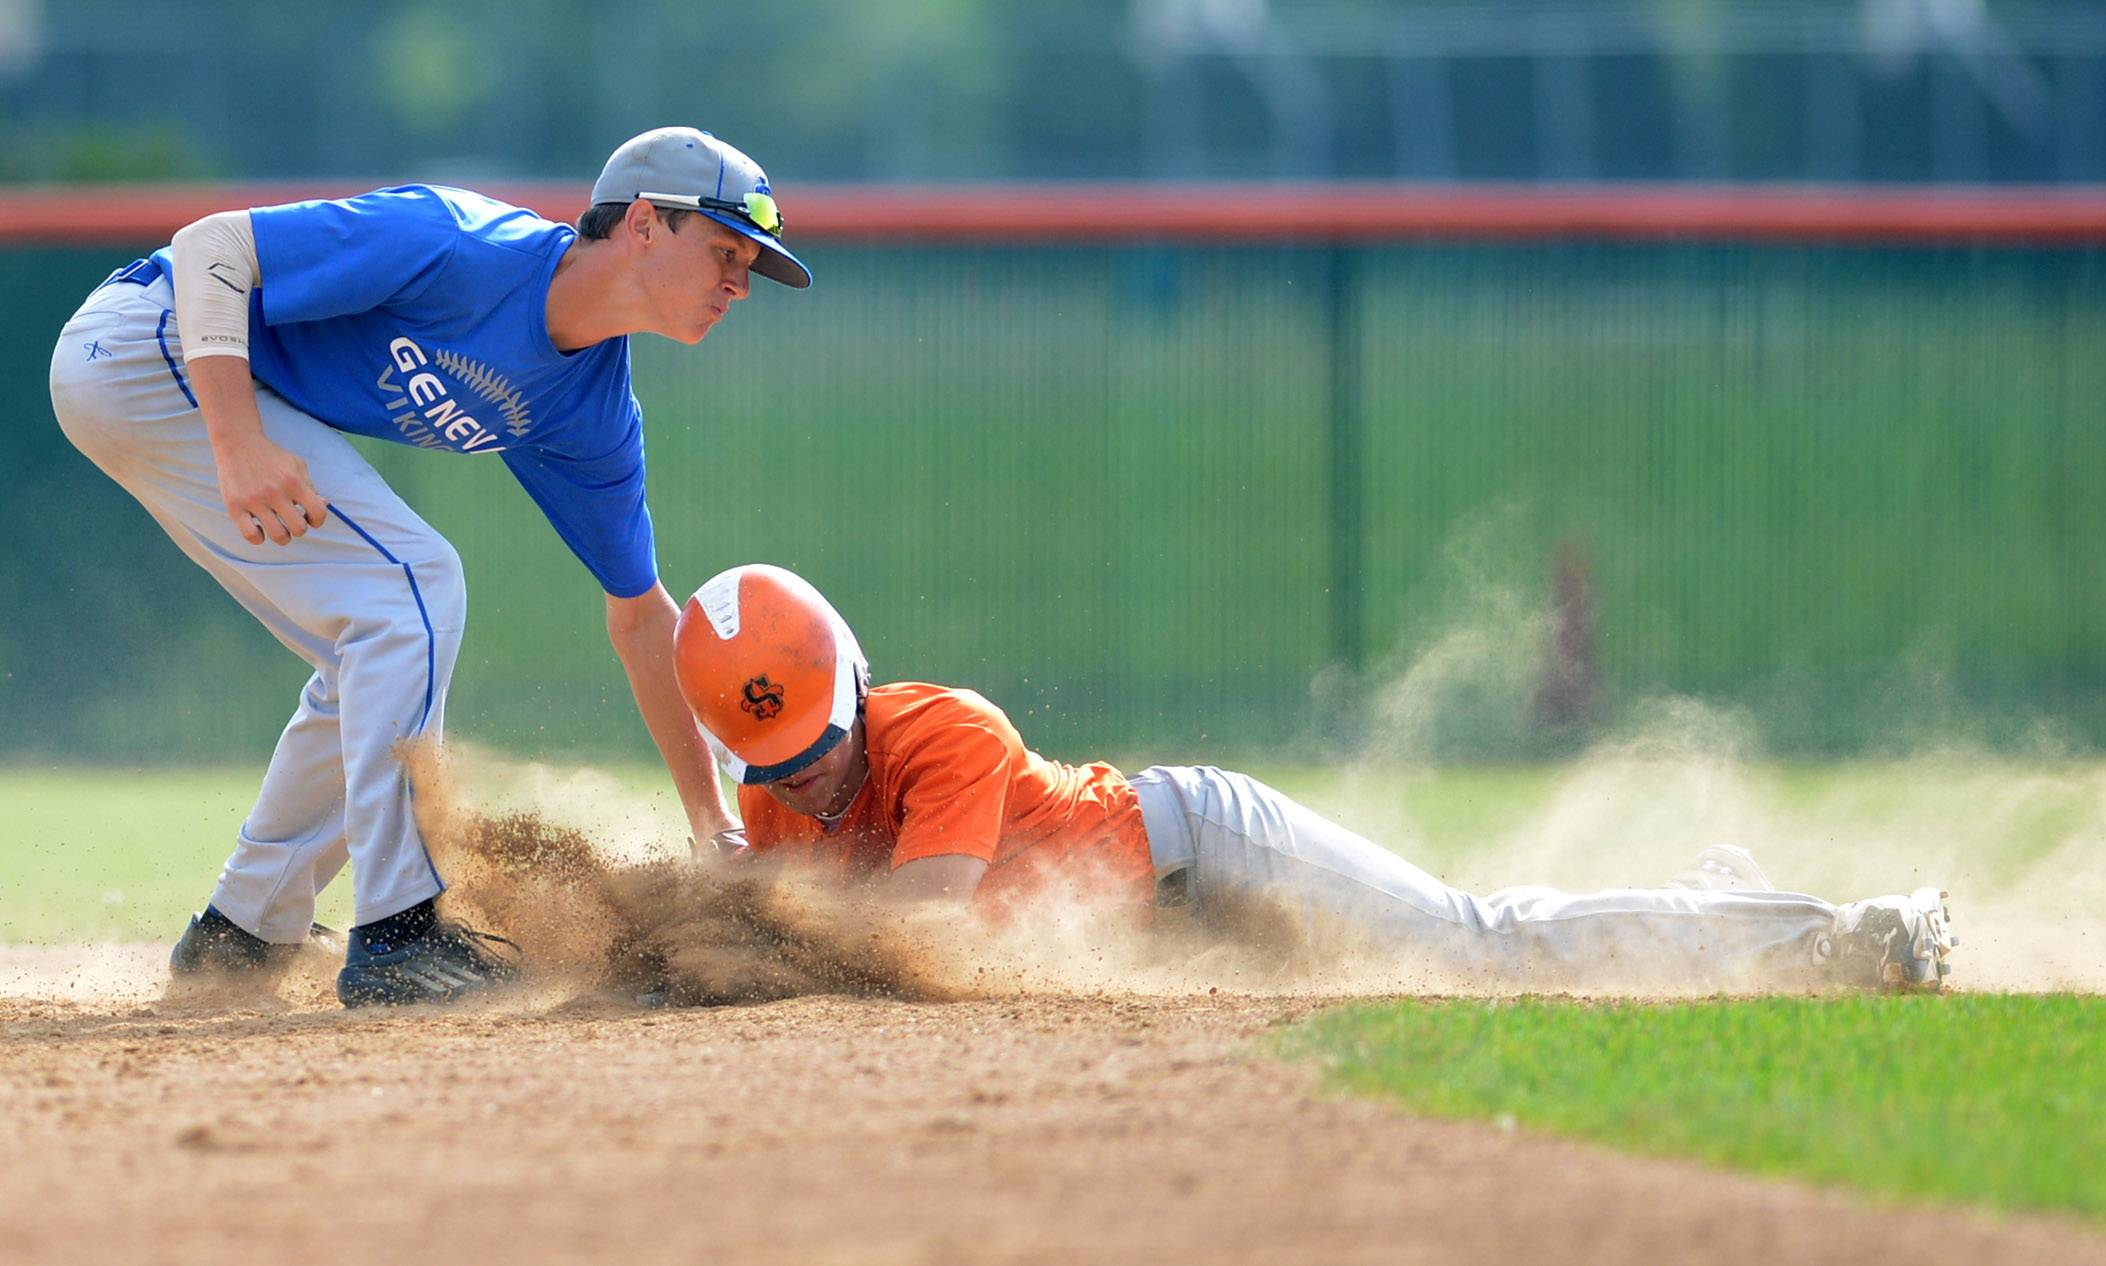 Geneva's Jack Wassel, pictured applying a tag against St. Charles East's Austin Regelbrugge who was safe on the play, will be a big part of the Vikings' lineup after hitting .327 with 29 RBI last year. Regelbrugge is one of the best left-handed pitchers in the area who will play right field when he doesn't pitch.